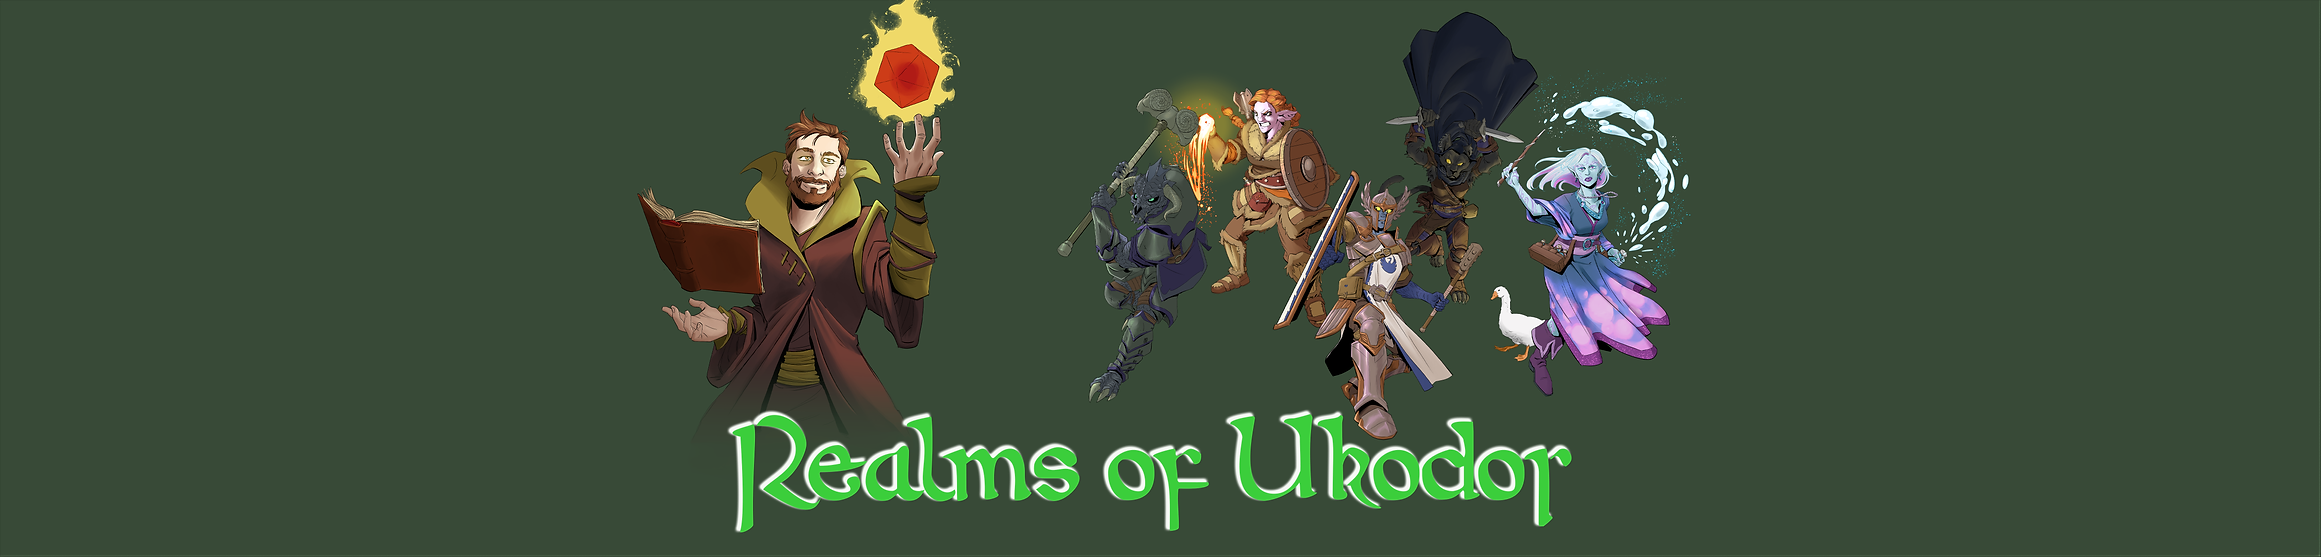 Realms Banner.png